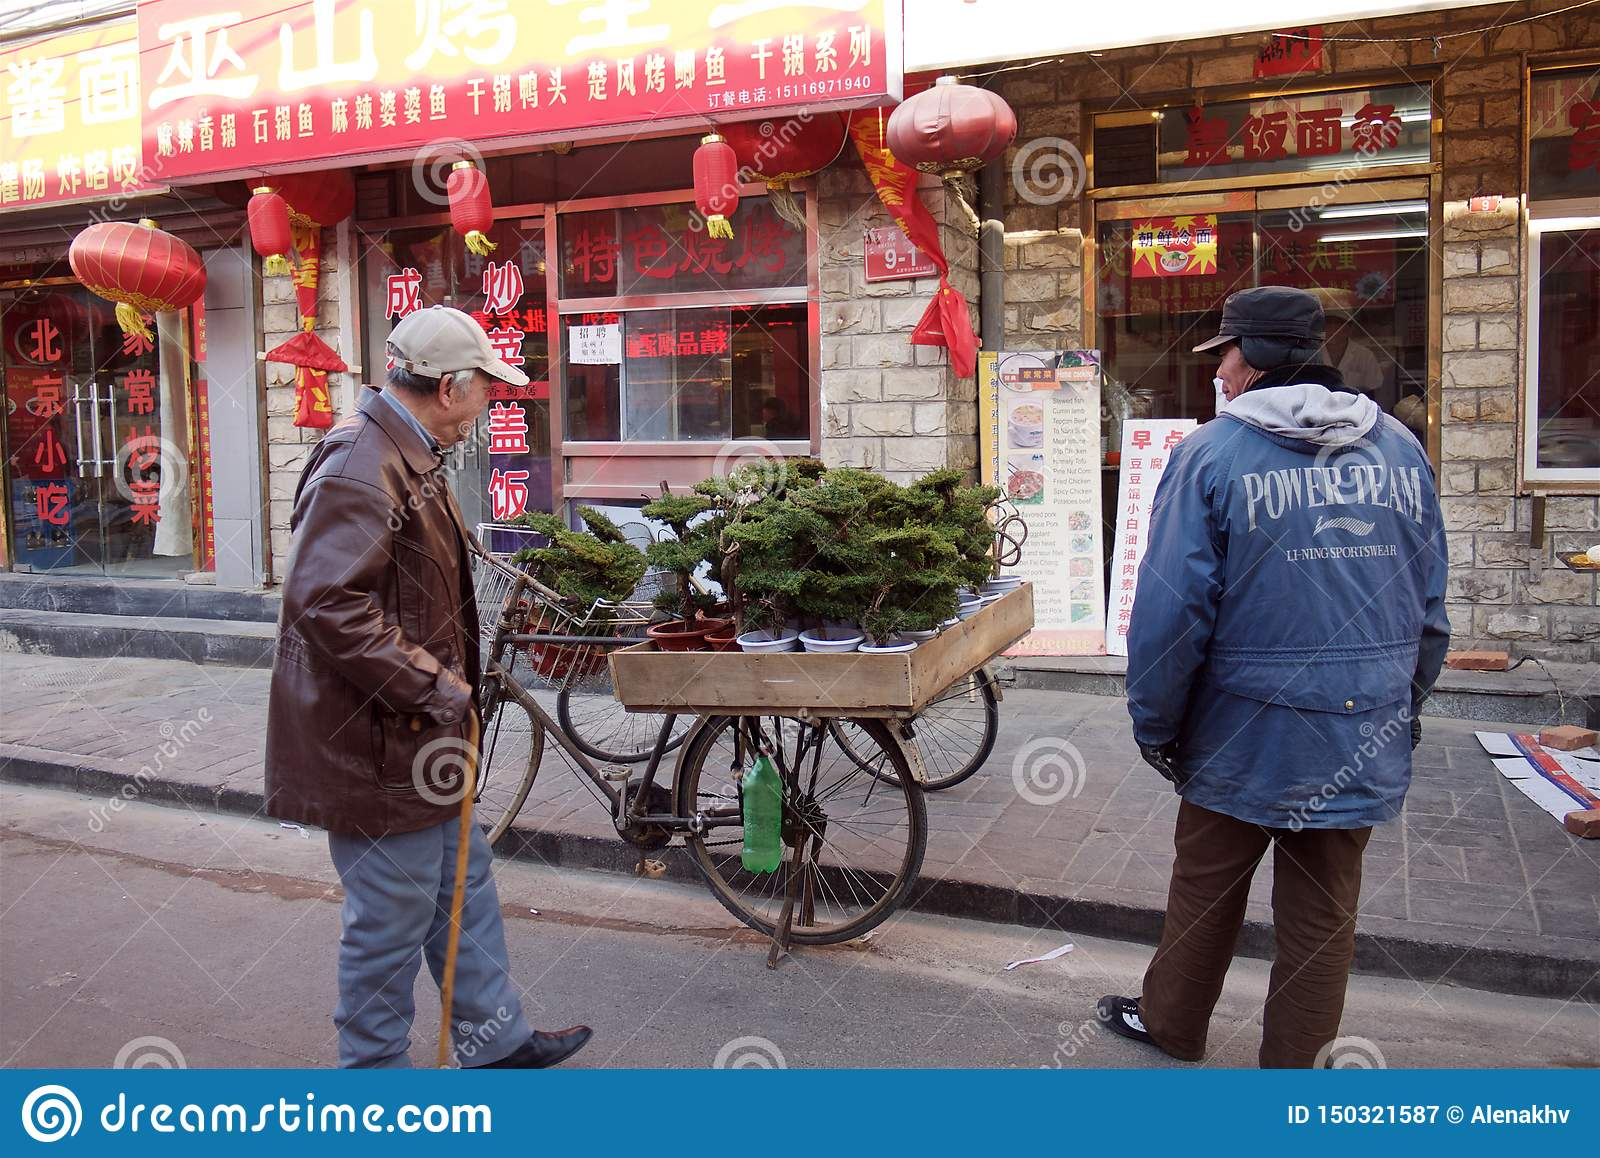 Beijing, China - January 10, 2011: man sells bonsai trees in the street of Beijing